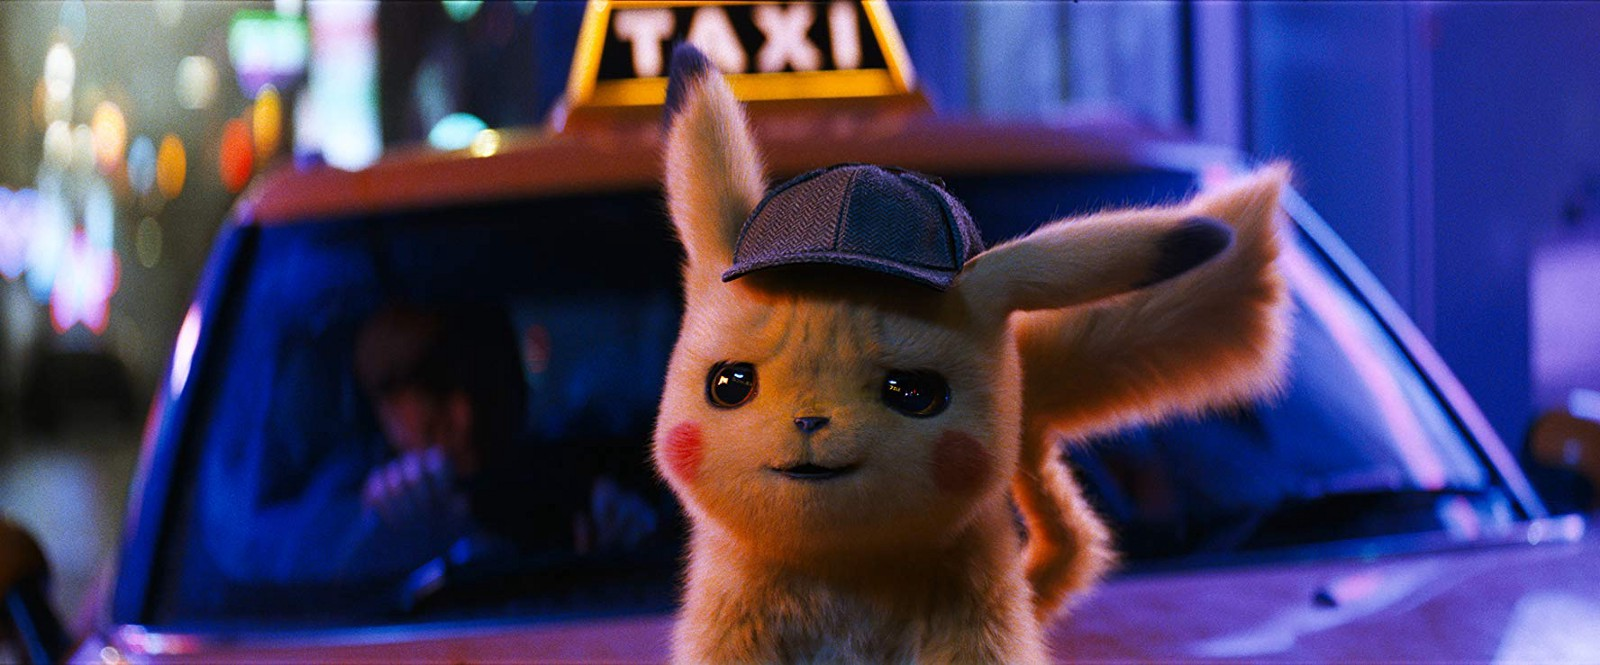 'Pokémon Detective Pikachu' Is a Lie